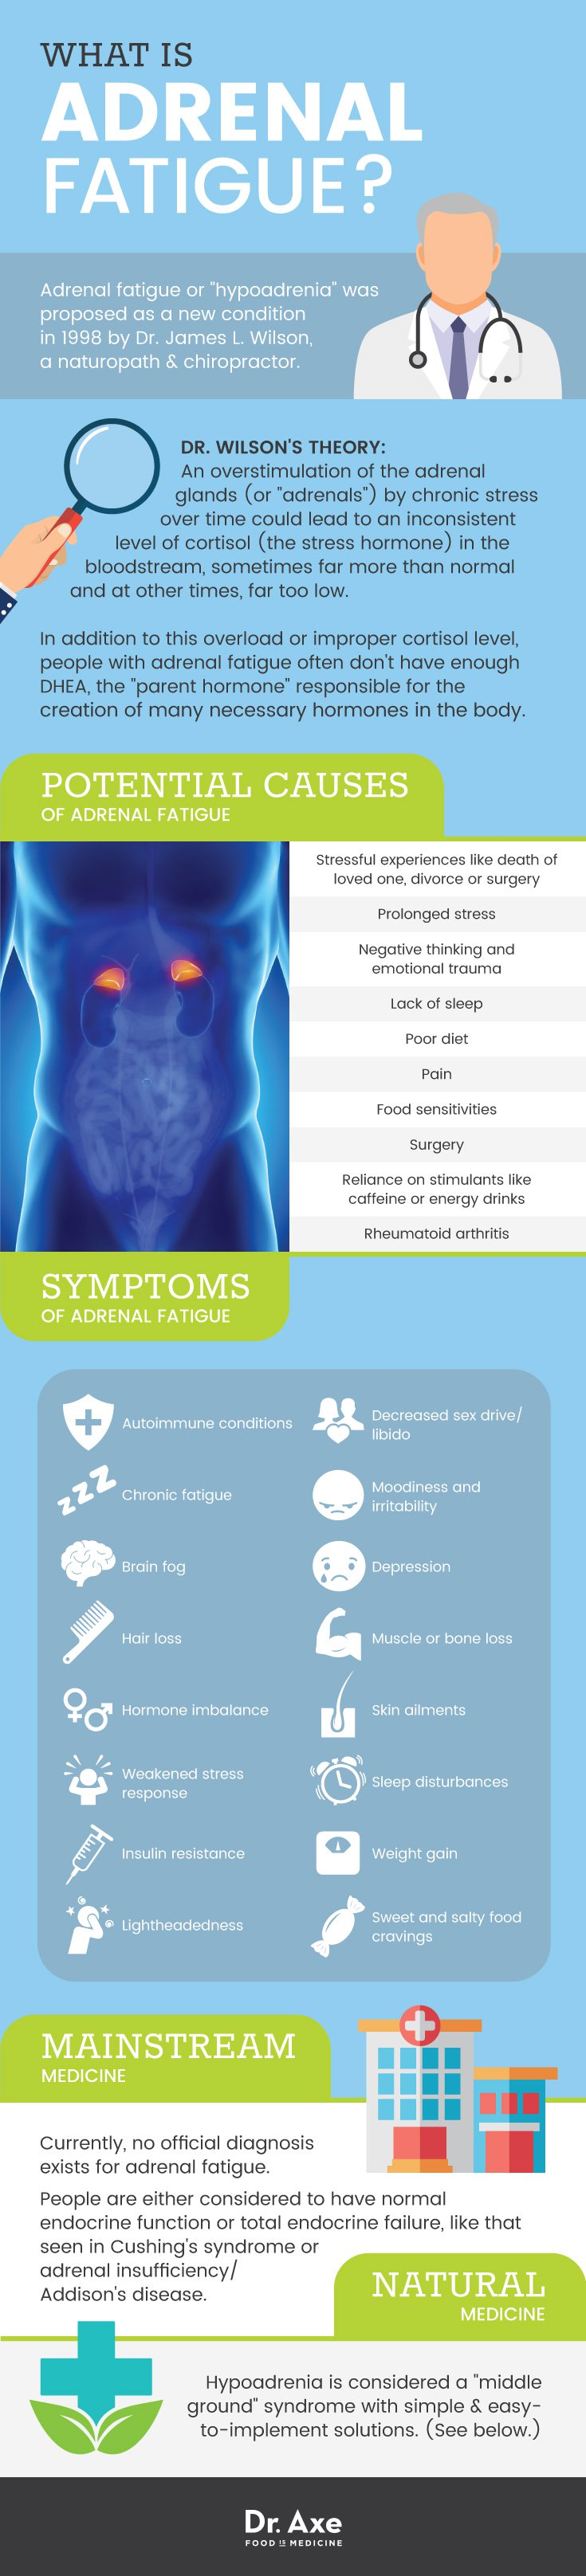 adrenal fatigue overview